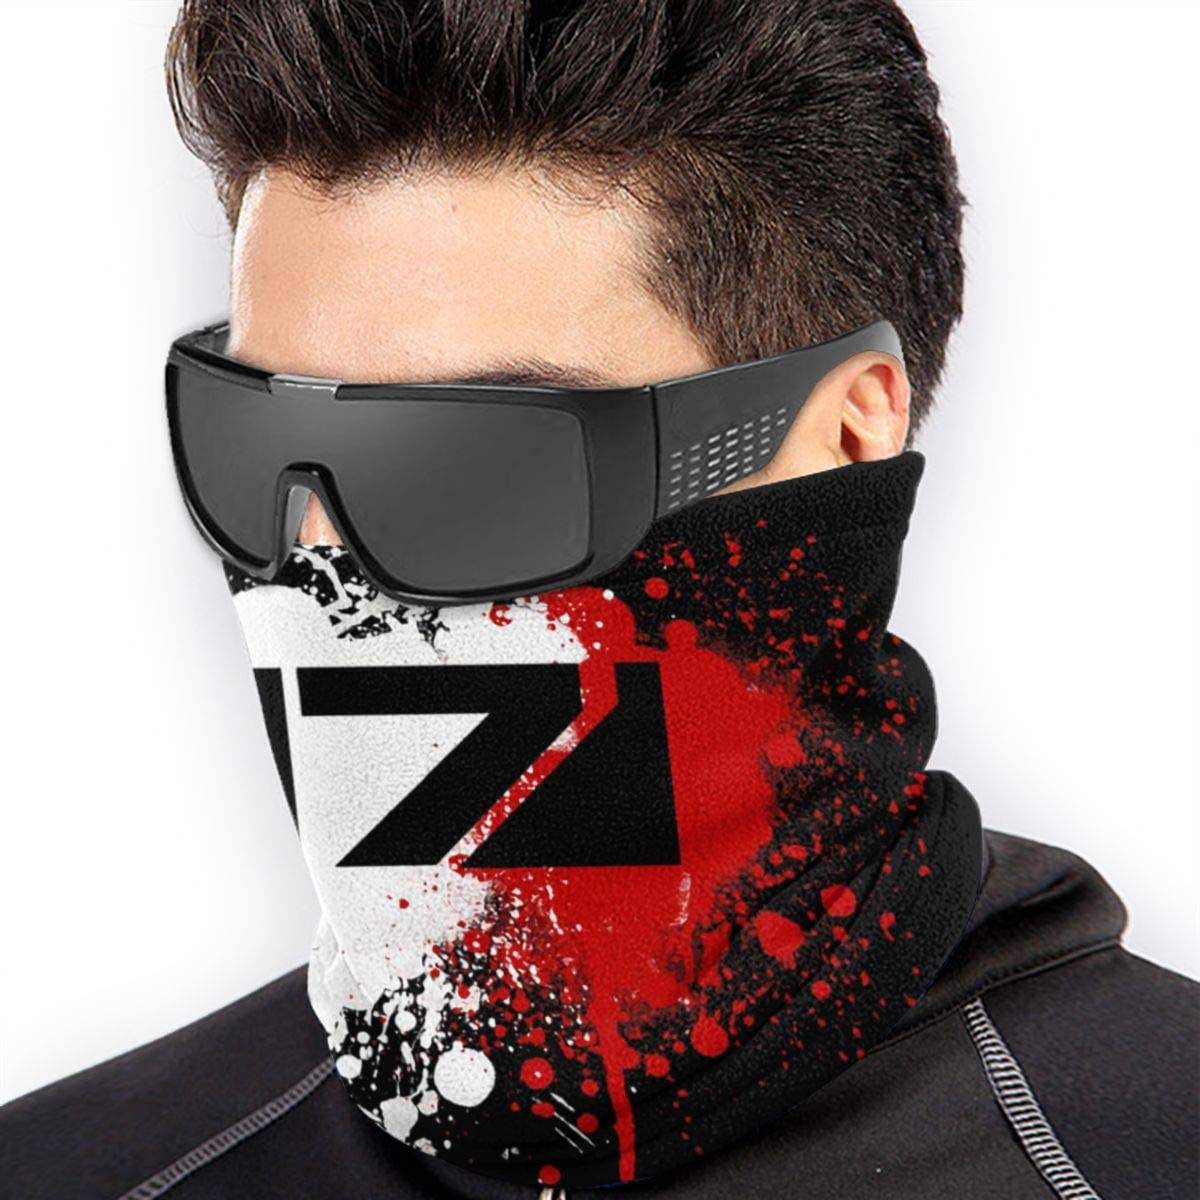 MUHBXC Mass Effect N7 Logo Cool Neck Gaiter Scarf Balaclava Face Clothing for Outdoor Cycling Running